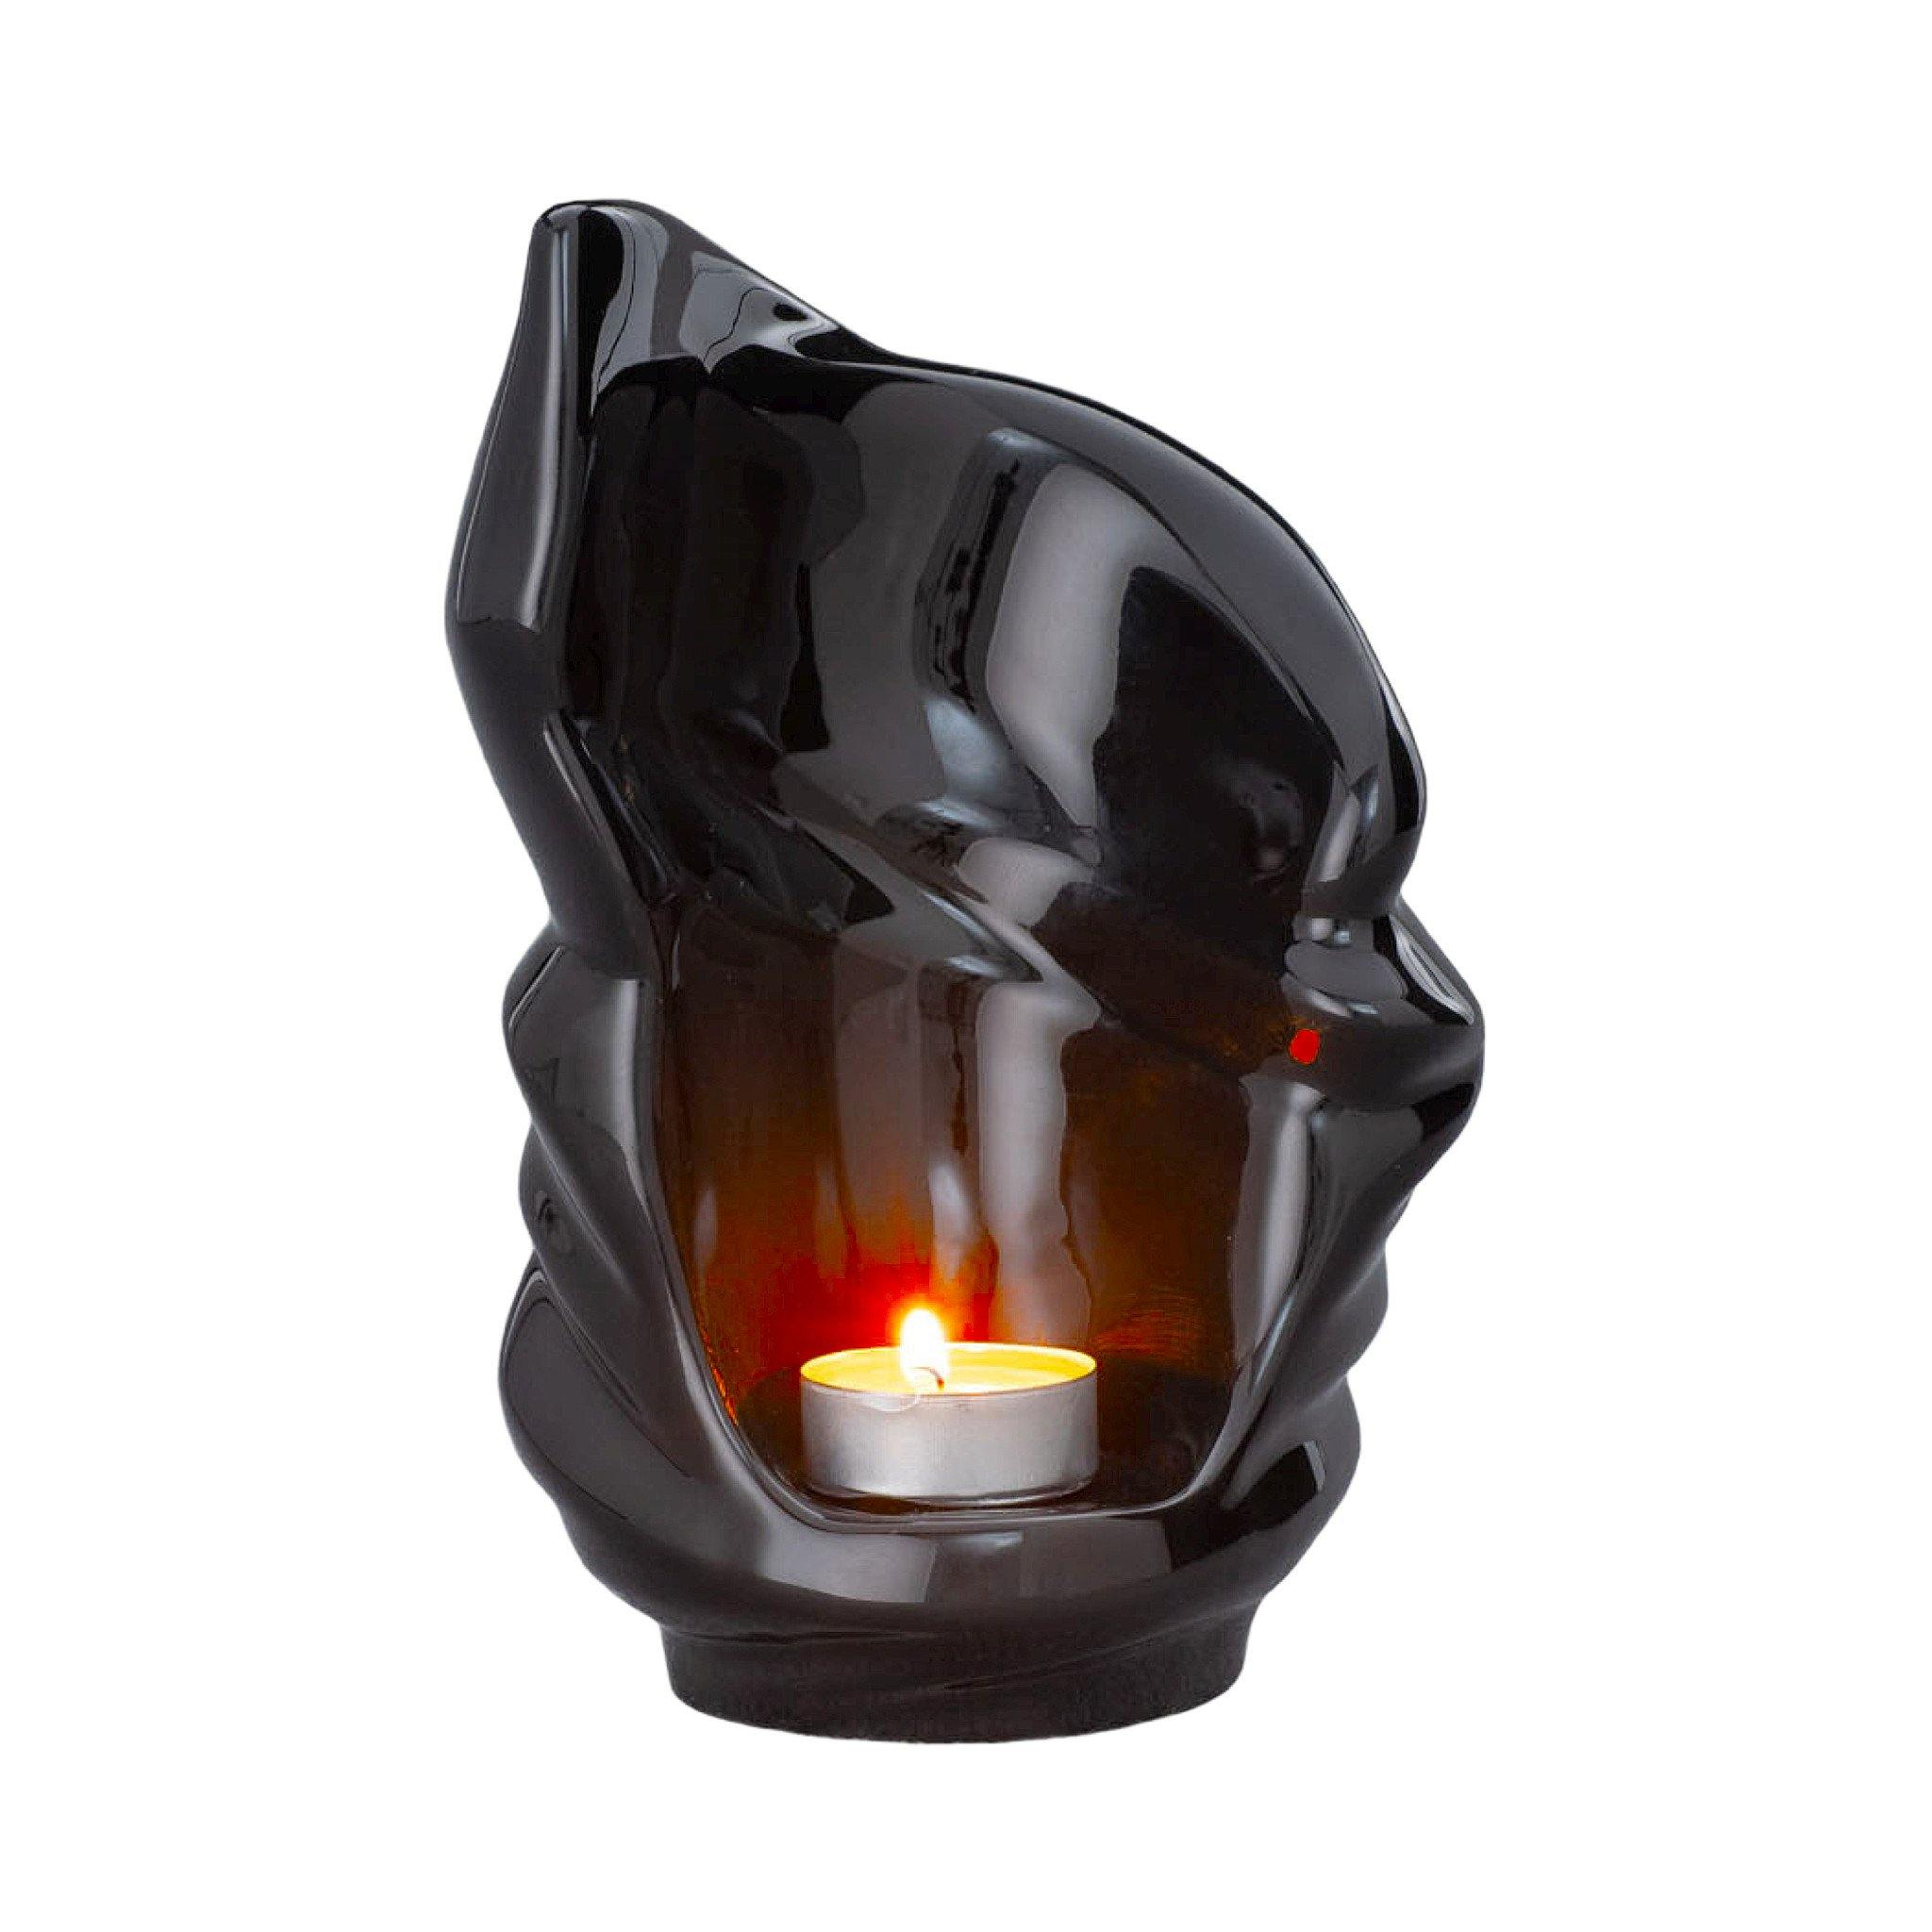 The Light Ceramic Cremation Ashes Urn Keepsake - Urns UK